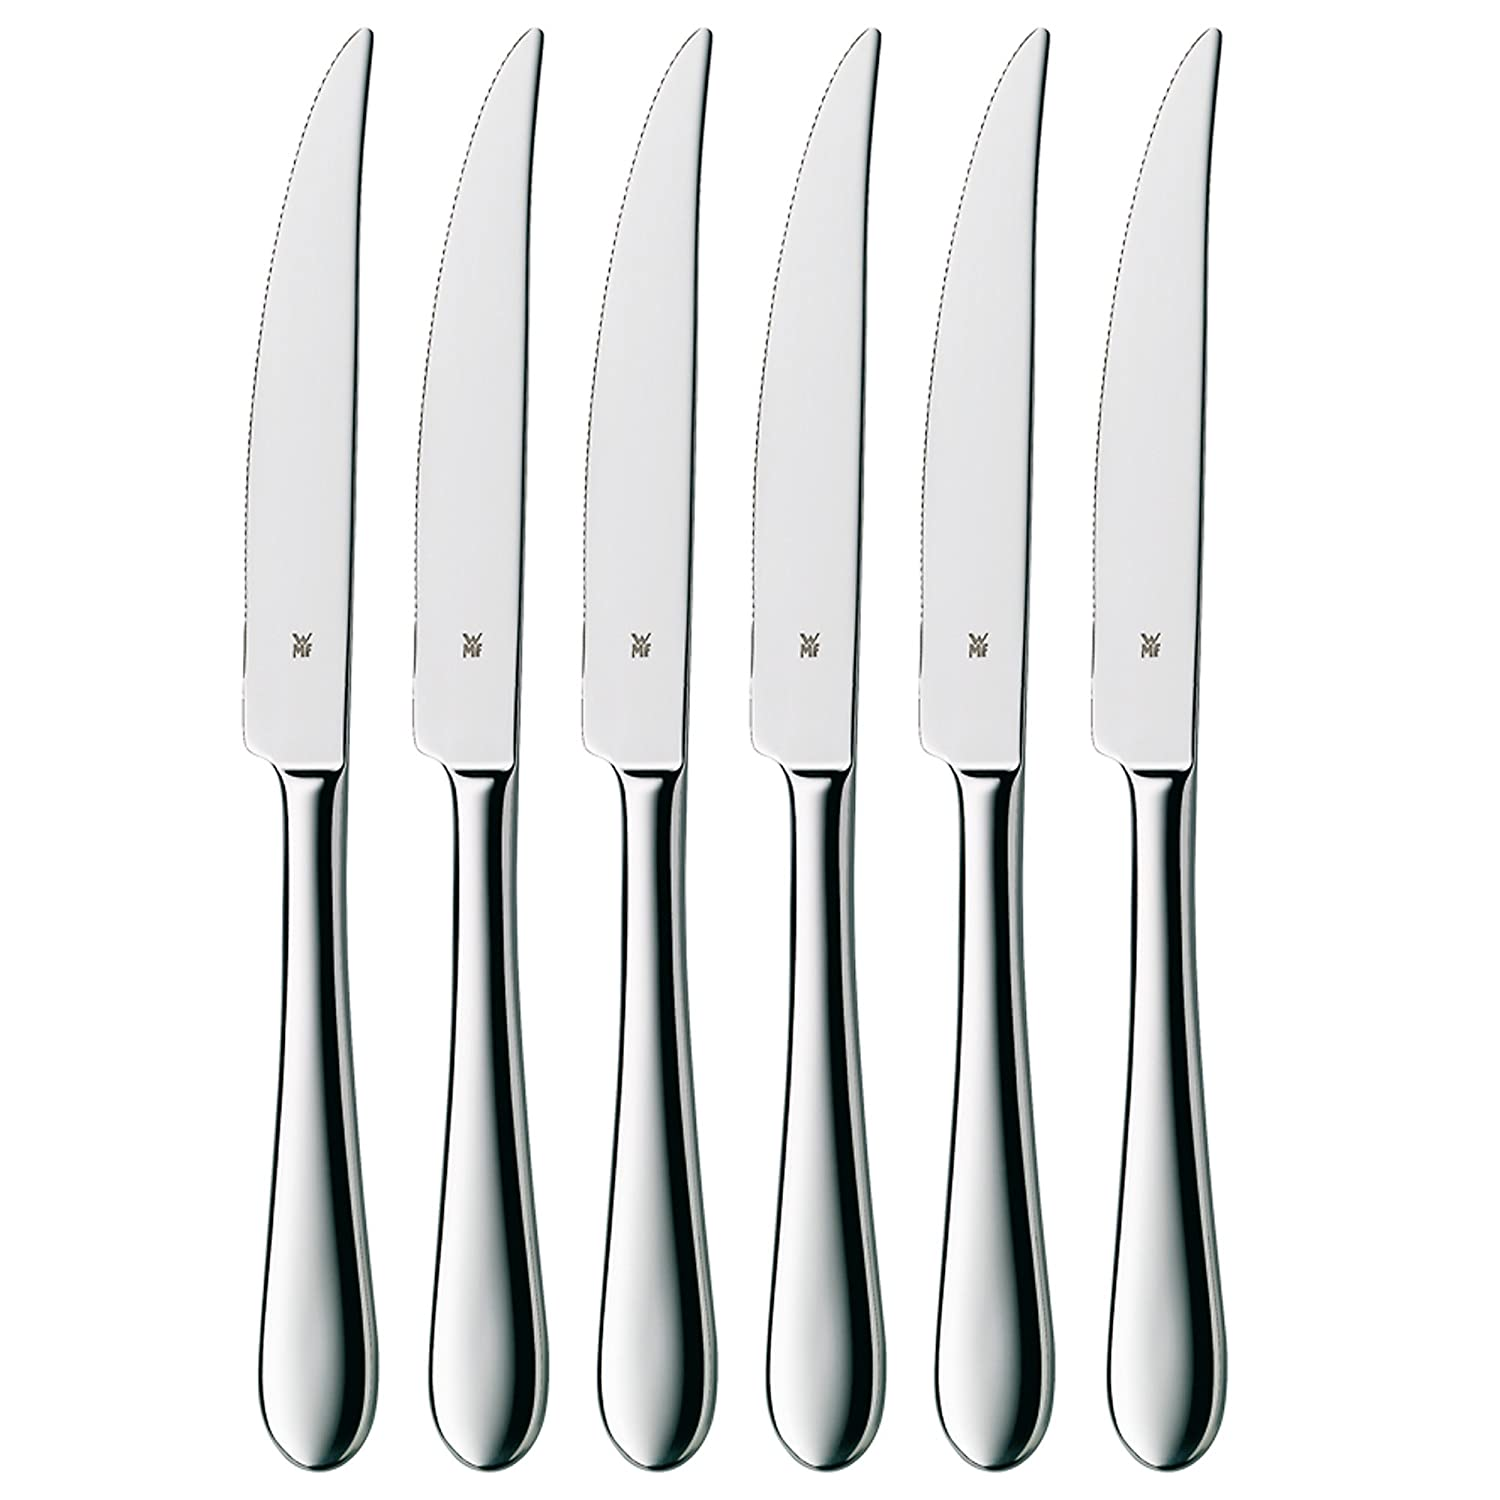 WMF Set of 6 Signum Stainless Steel Steak Knives 8400001675